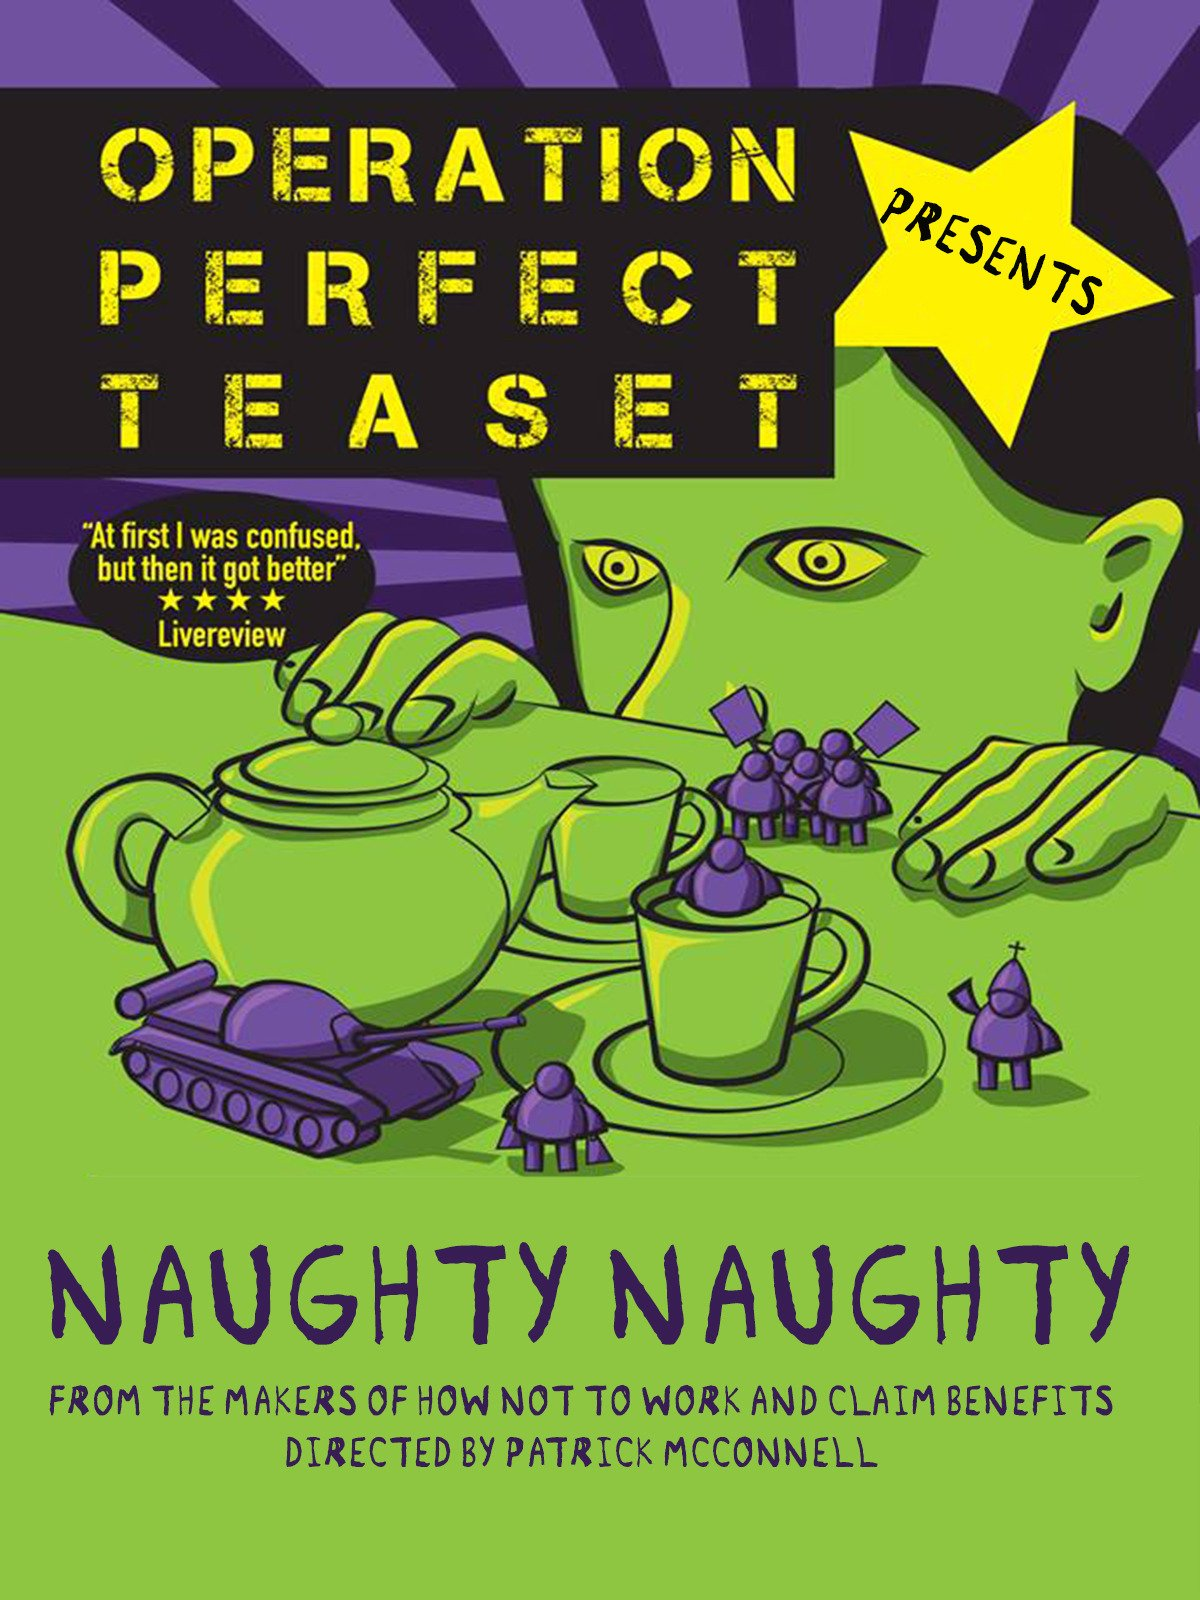 Operation Perfect Teaset Presents: Naughty Naughty